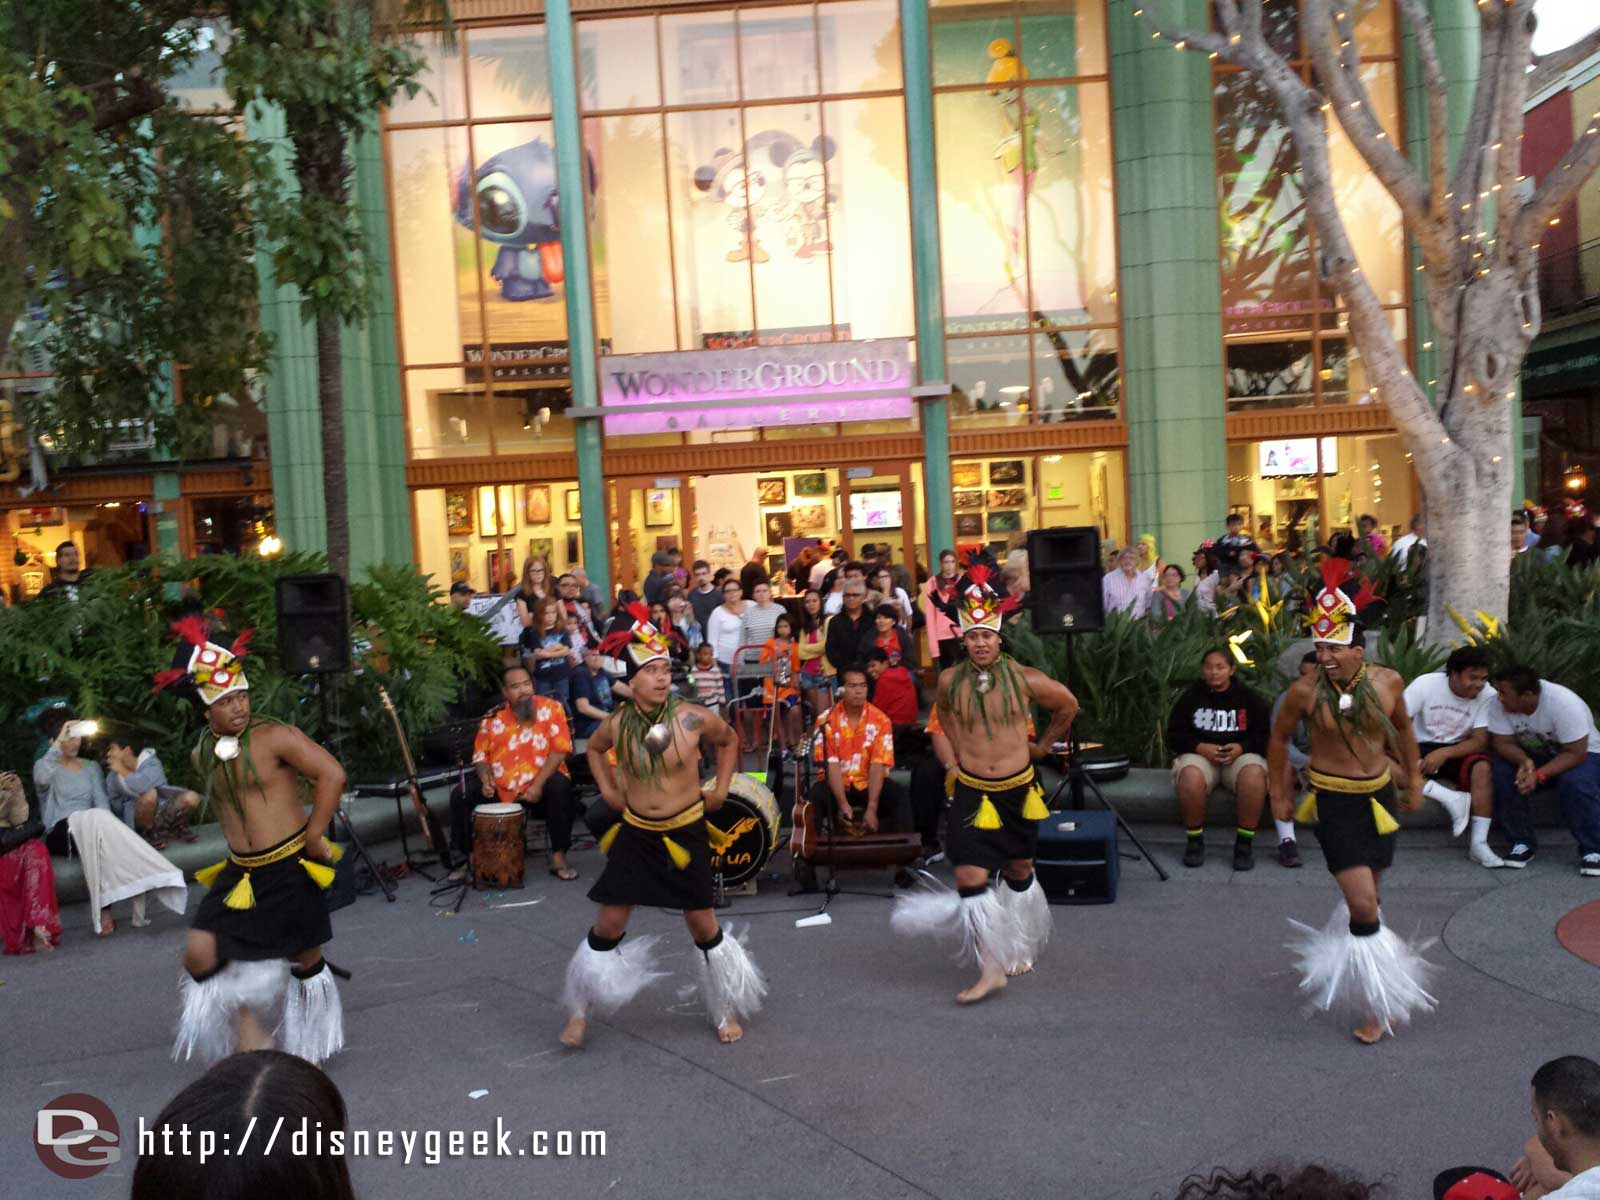 Aulani & Downtown Disney are presenting dances from various islands of the Pacific